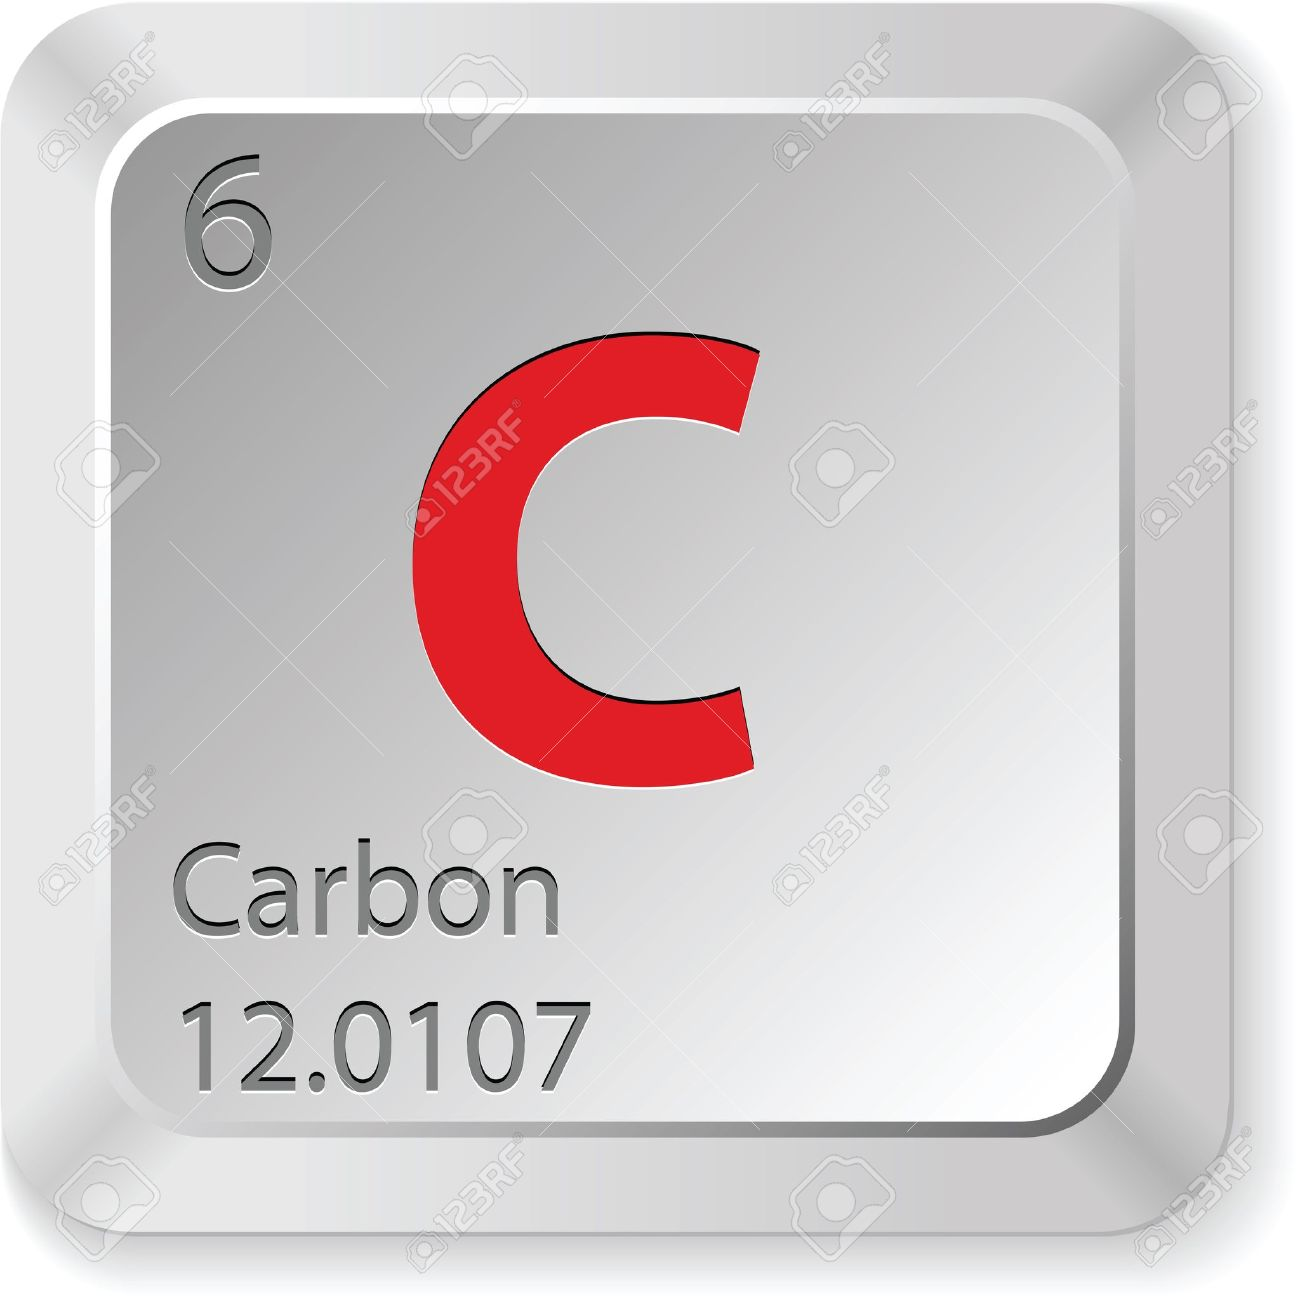 Oxygen symbol periodic table choice auto ac wiring diagrams the symbol for carbon on periodic table choice image periodic table 15808951 carbon keyboard button stock vector carbon periodic element symbol for carbon on gamestrikefo Gallery